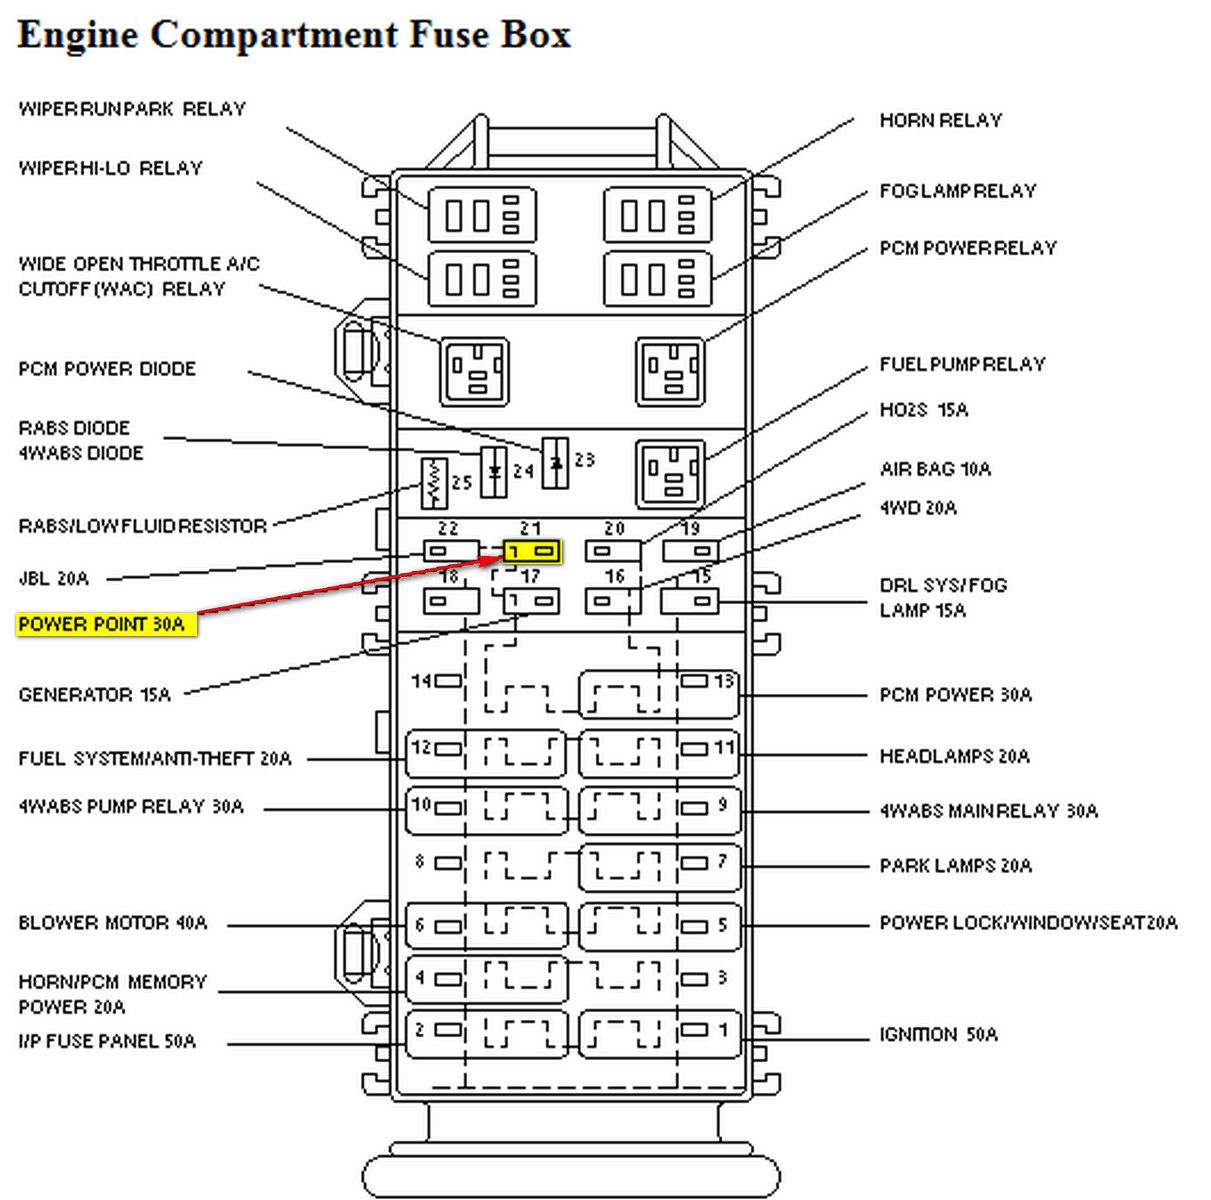 96 Explorer Fuse Panel Schematic Ford Explorer 4x4 Hello, 1996 - Wiring Diagram